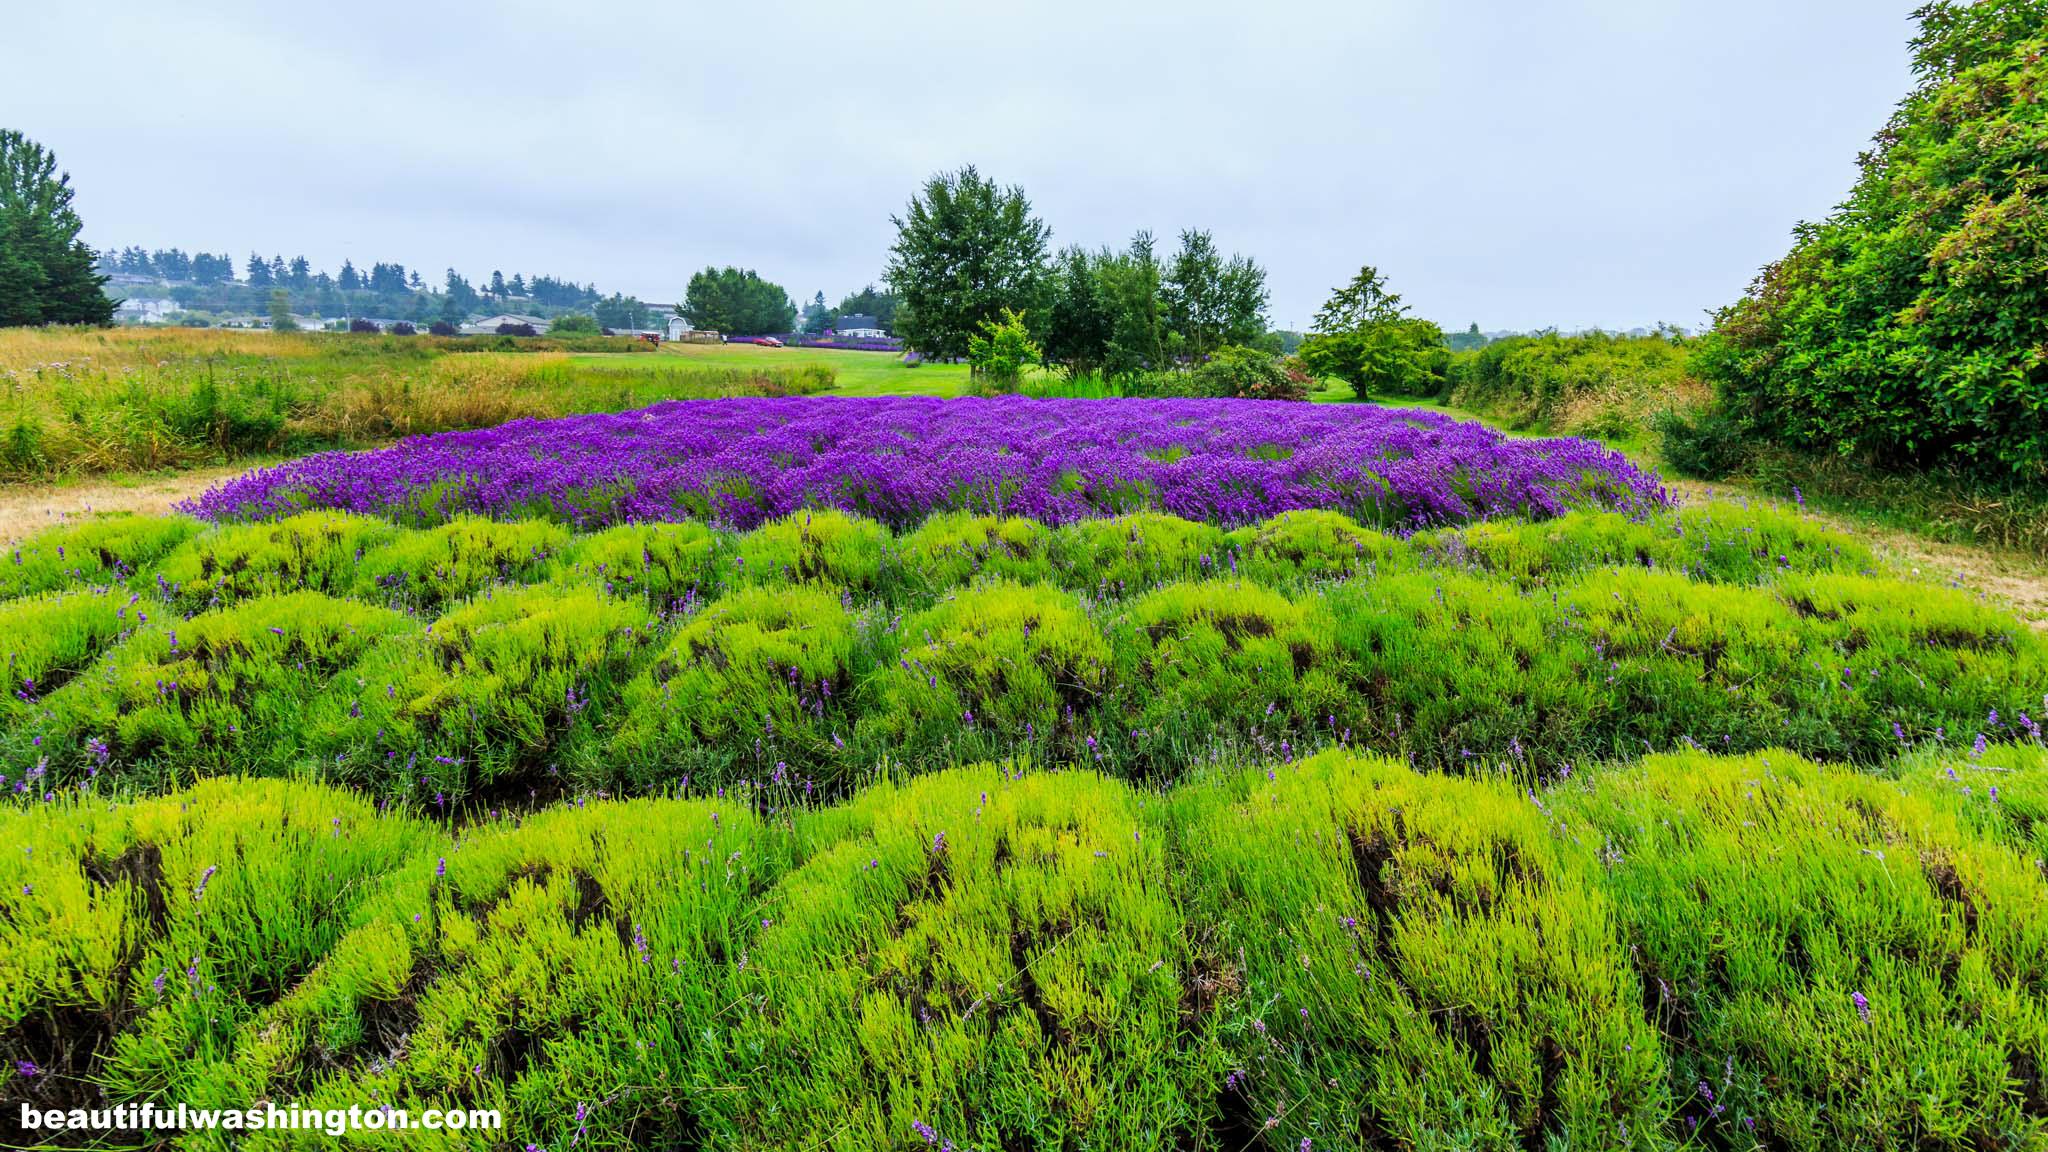 Photo from Clallam County, Jardin Du Soleil Lavender Farm